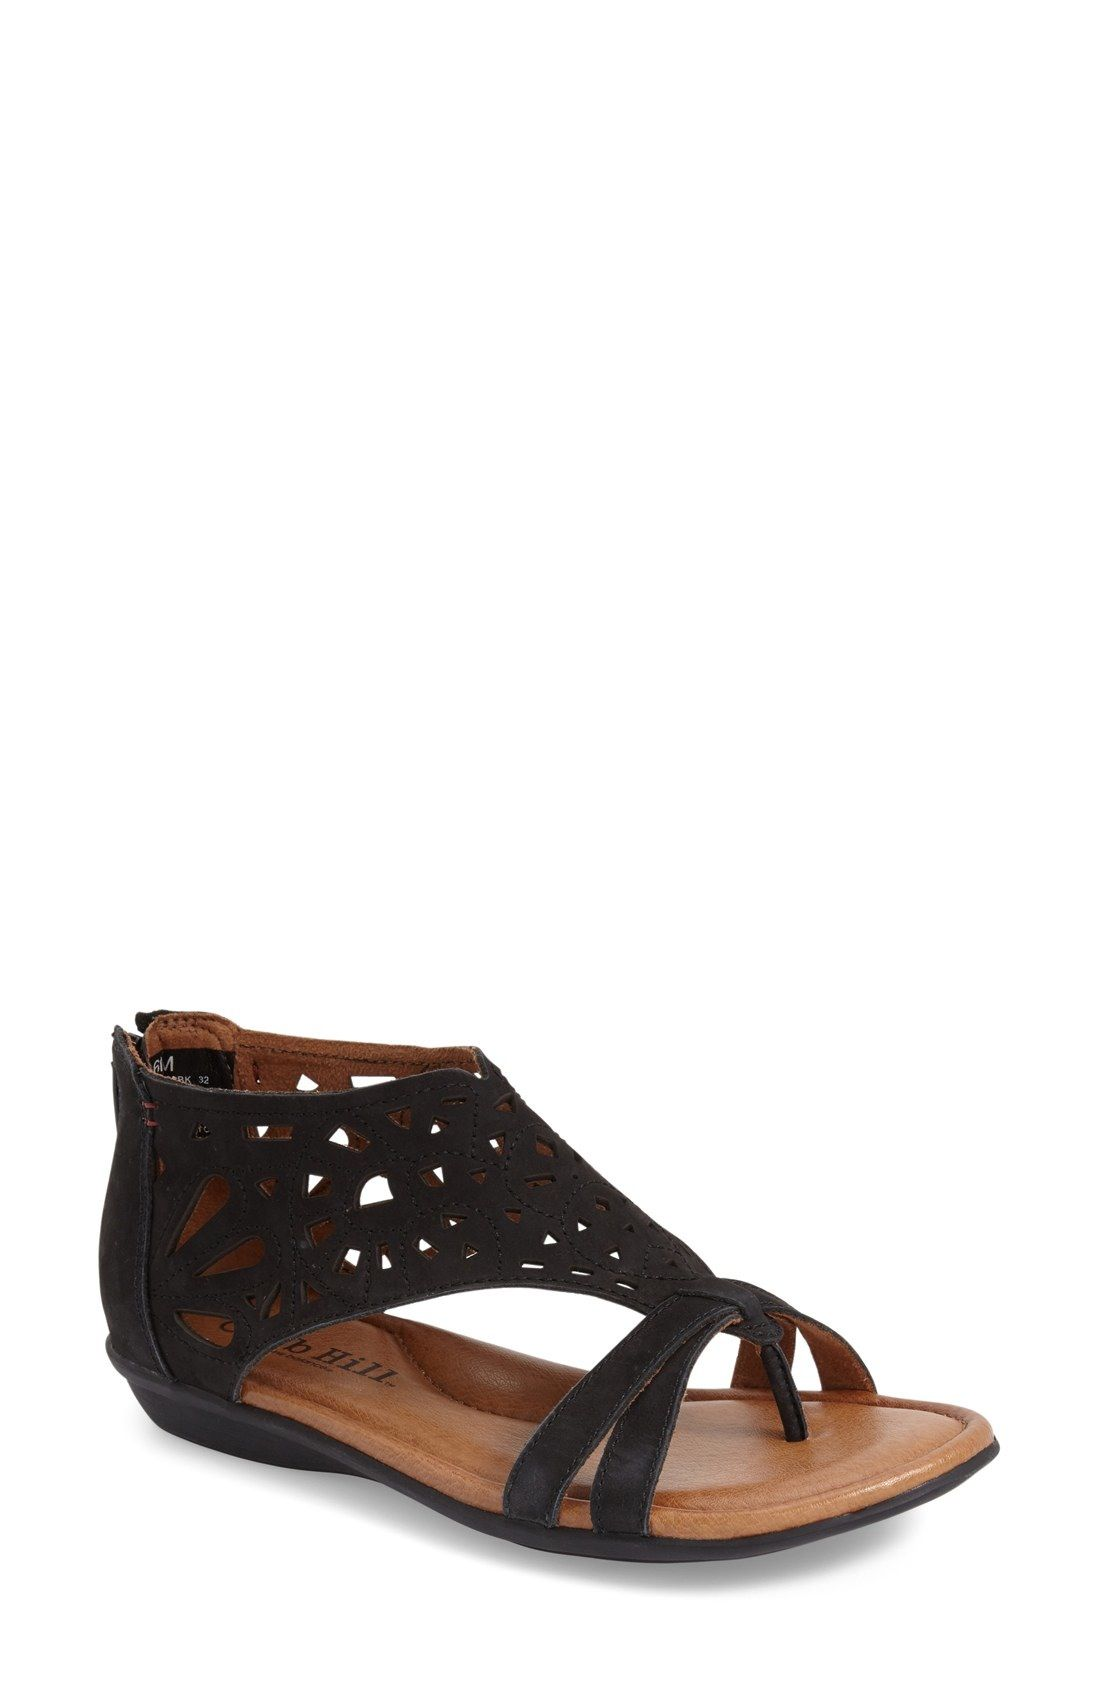 55511e21e3e Cobb Hill 'Jordan' Sandal (Women) available at #Nordstrom | Fashion ...